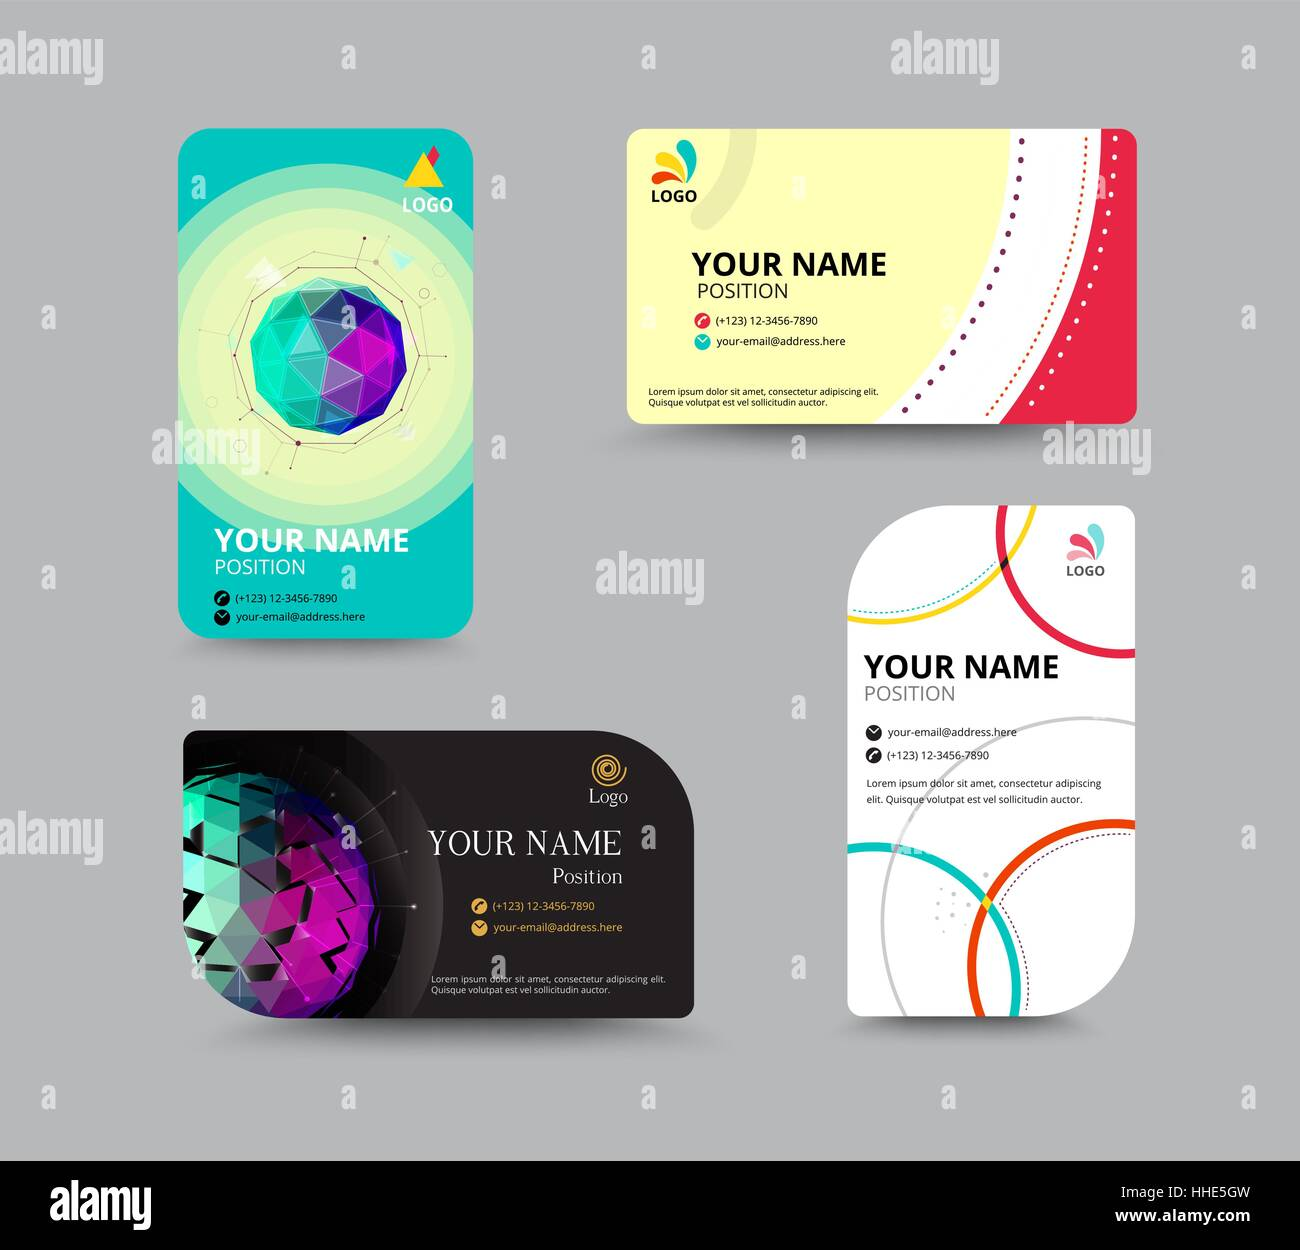 Business card template name card design for business include business card template name card design for business include sample text layout vector illustration simple name tag design concept colourmoves